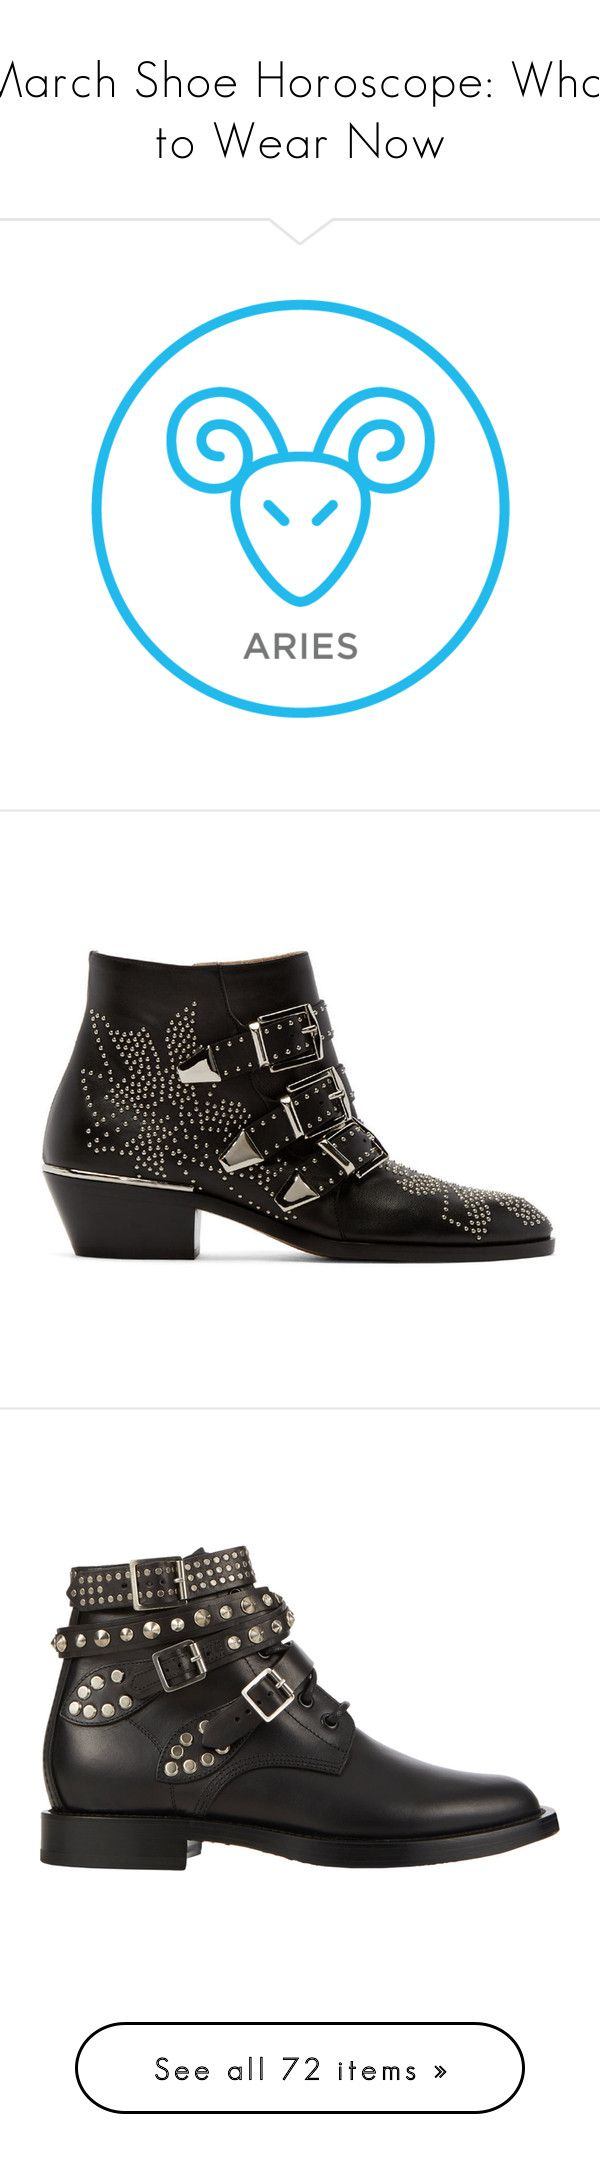 """""""March Shoe Horoscope: What to Wear Now"""" by polyvore-editorial ❤ liked on Polyvore featuring shoes, Horoscope, boots, ankle booties, studded boots, ankle length boots, studded ankle booties, black and silver boots, zipper boots and botas"""